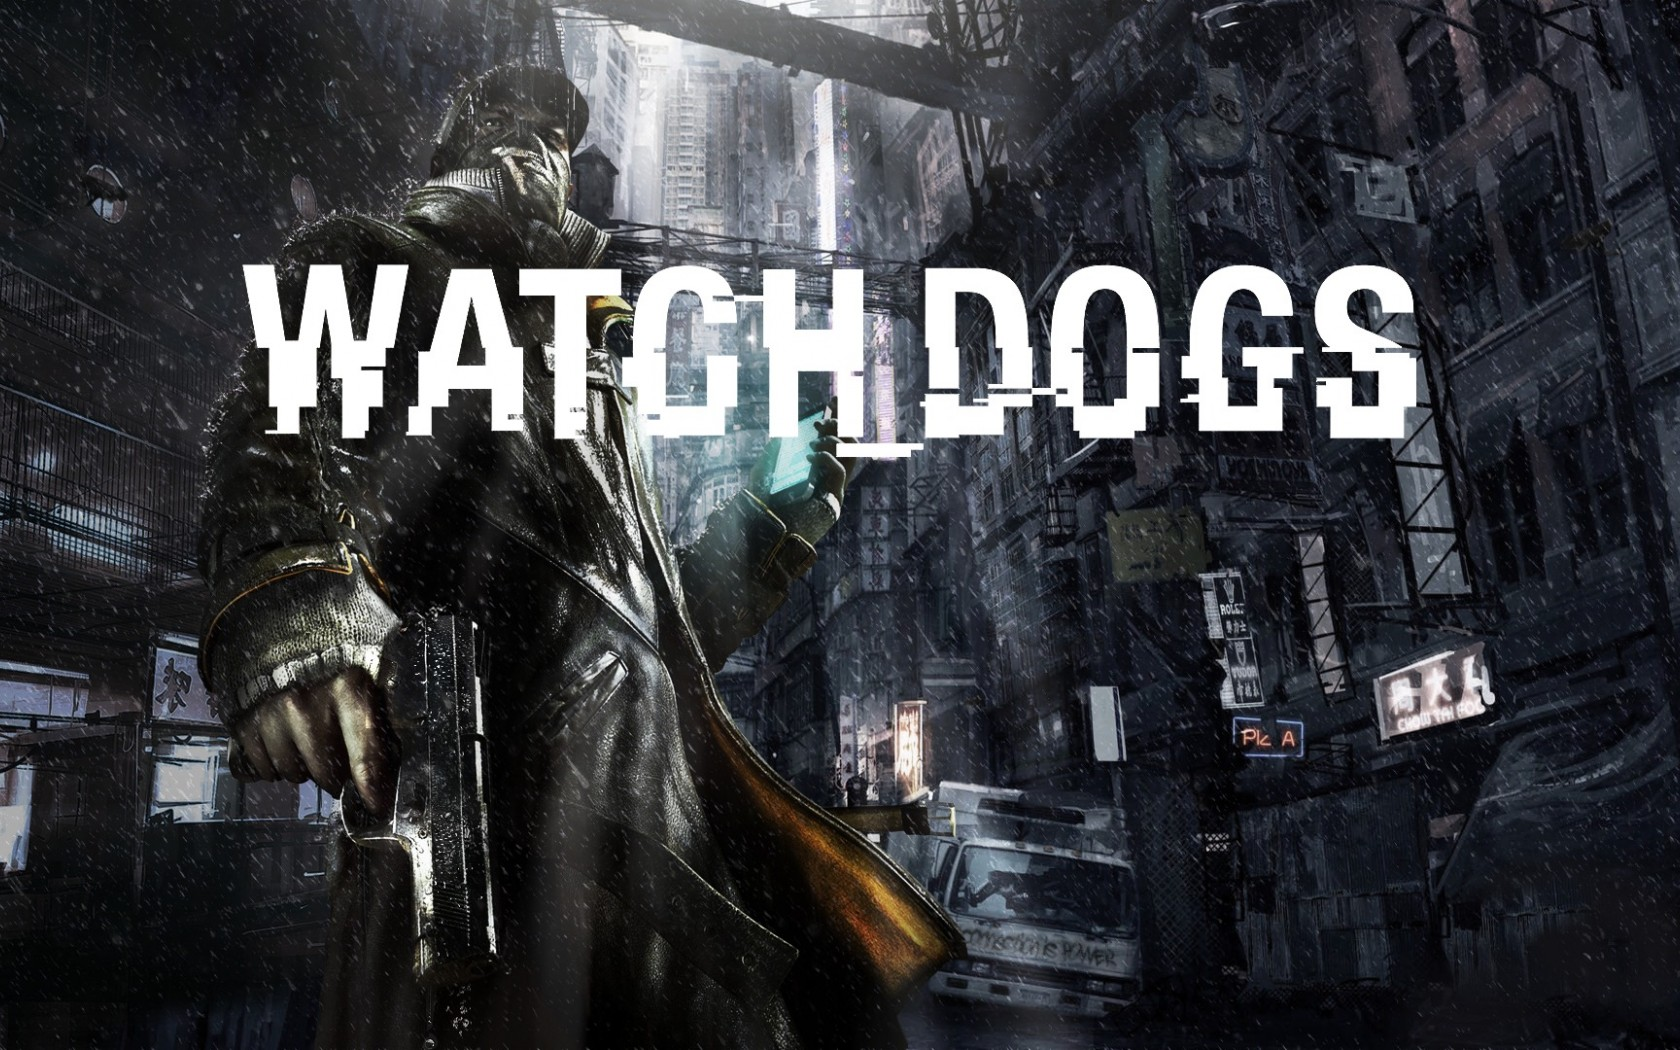 Watch Dogs Ps4 Will Run At 1080p And 60 Fps Listed In Sony S Database Says Sony Customer Service Update